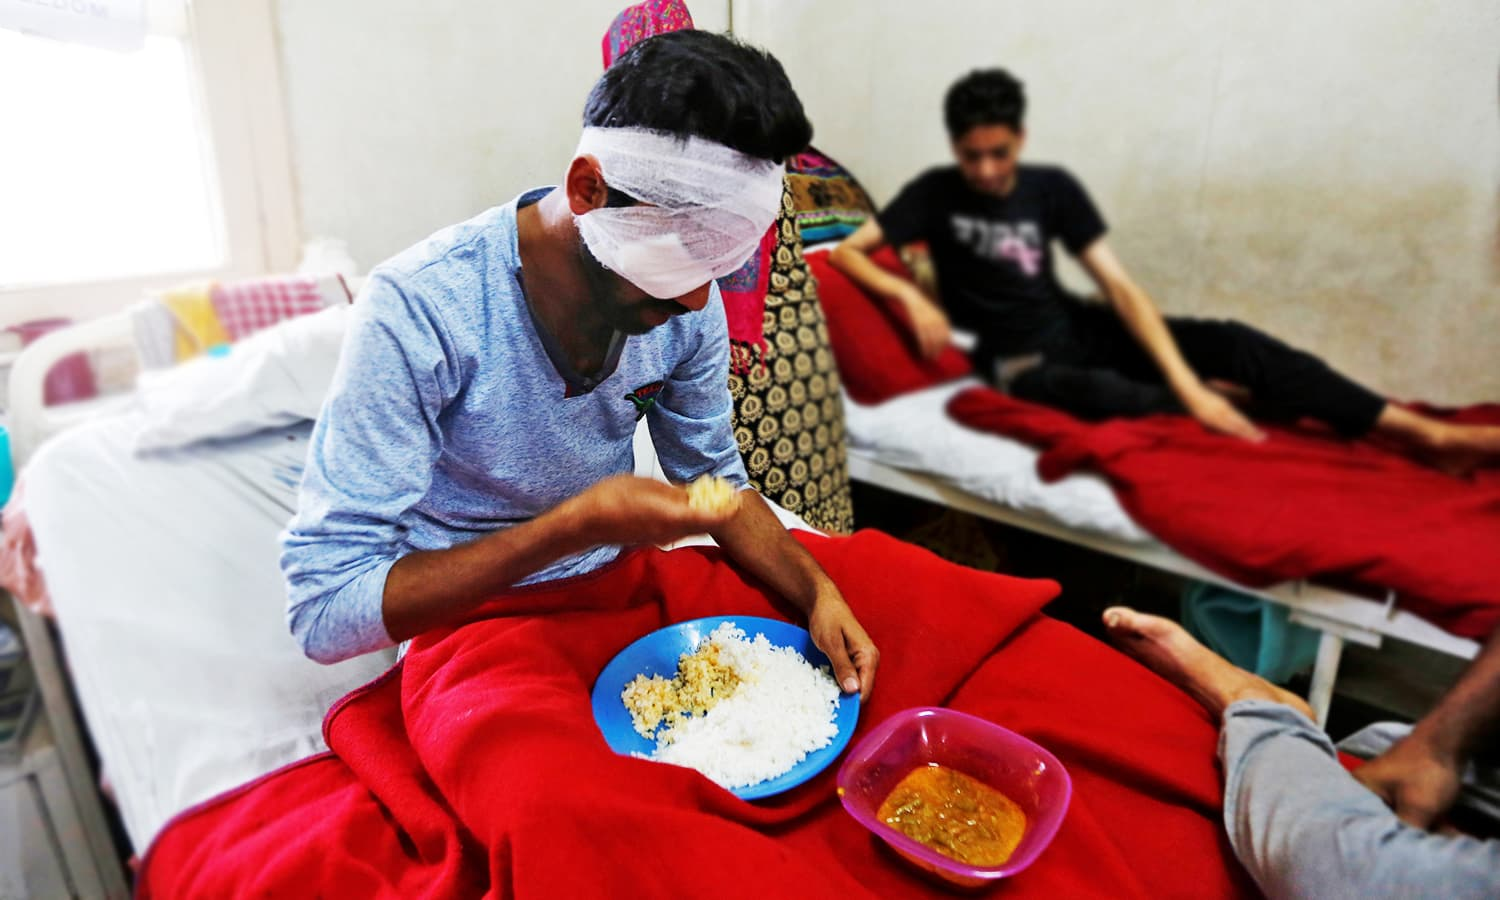 A man who was injured in clashes between Indian police and protesters eats his food inside a hospital ward in Srinagar, Sept 21, 2016. ─ Reuters